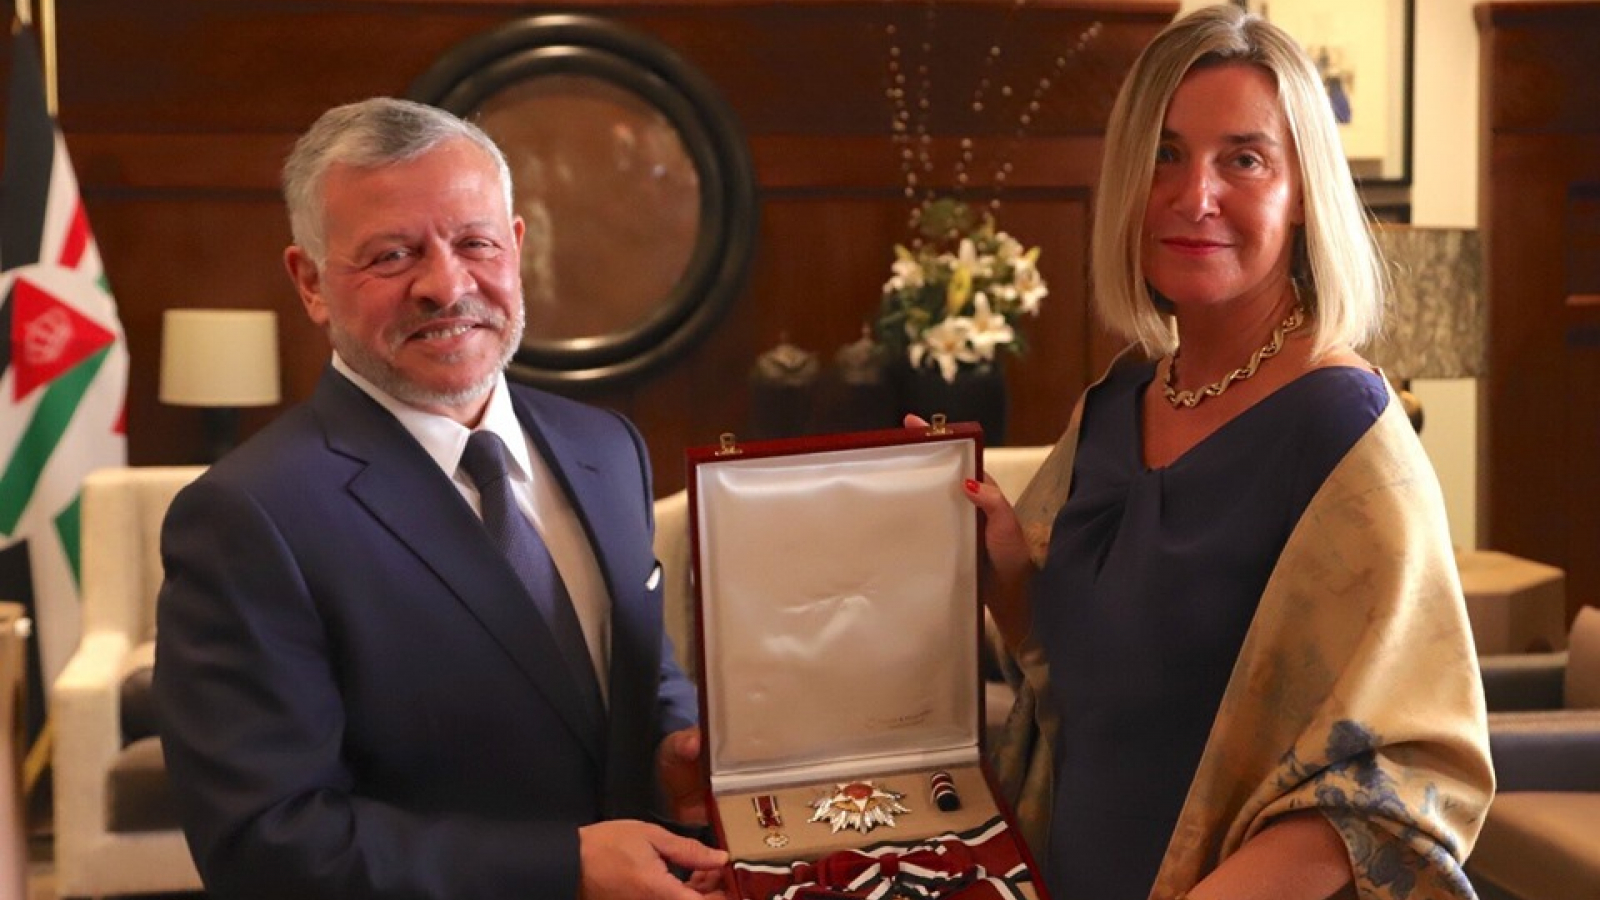 European Union HR/VP Federica Mogherini decorated in Amman